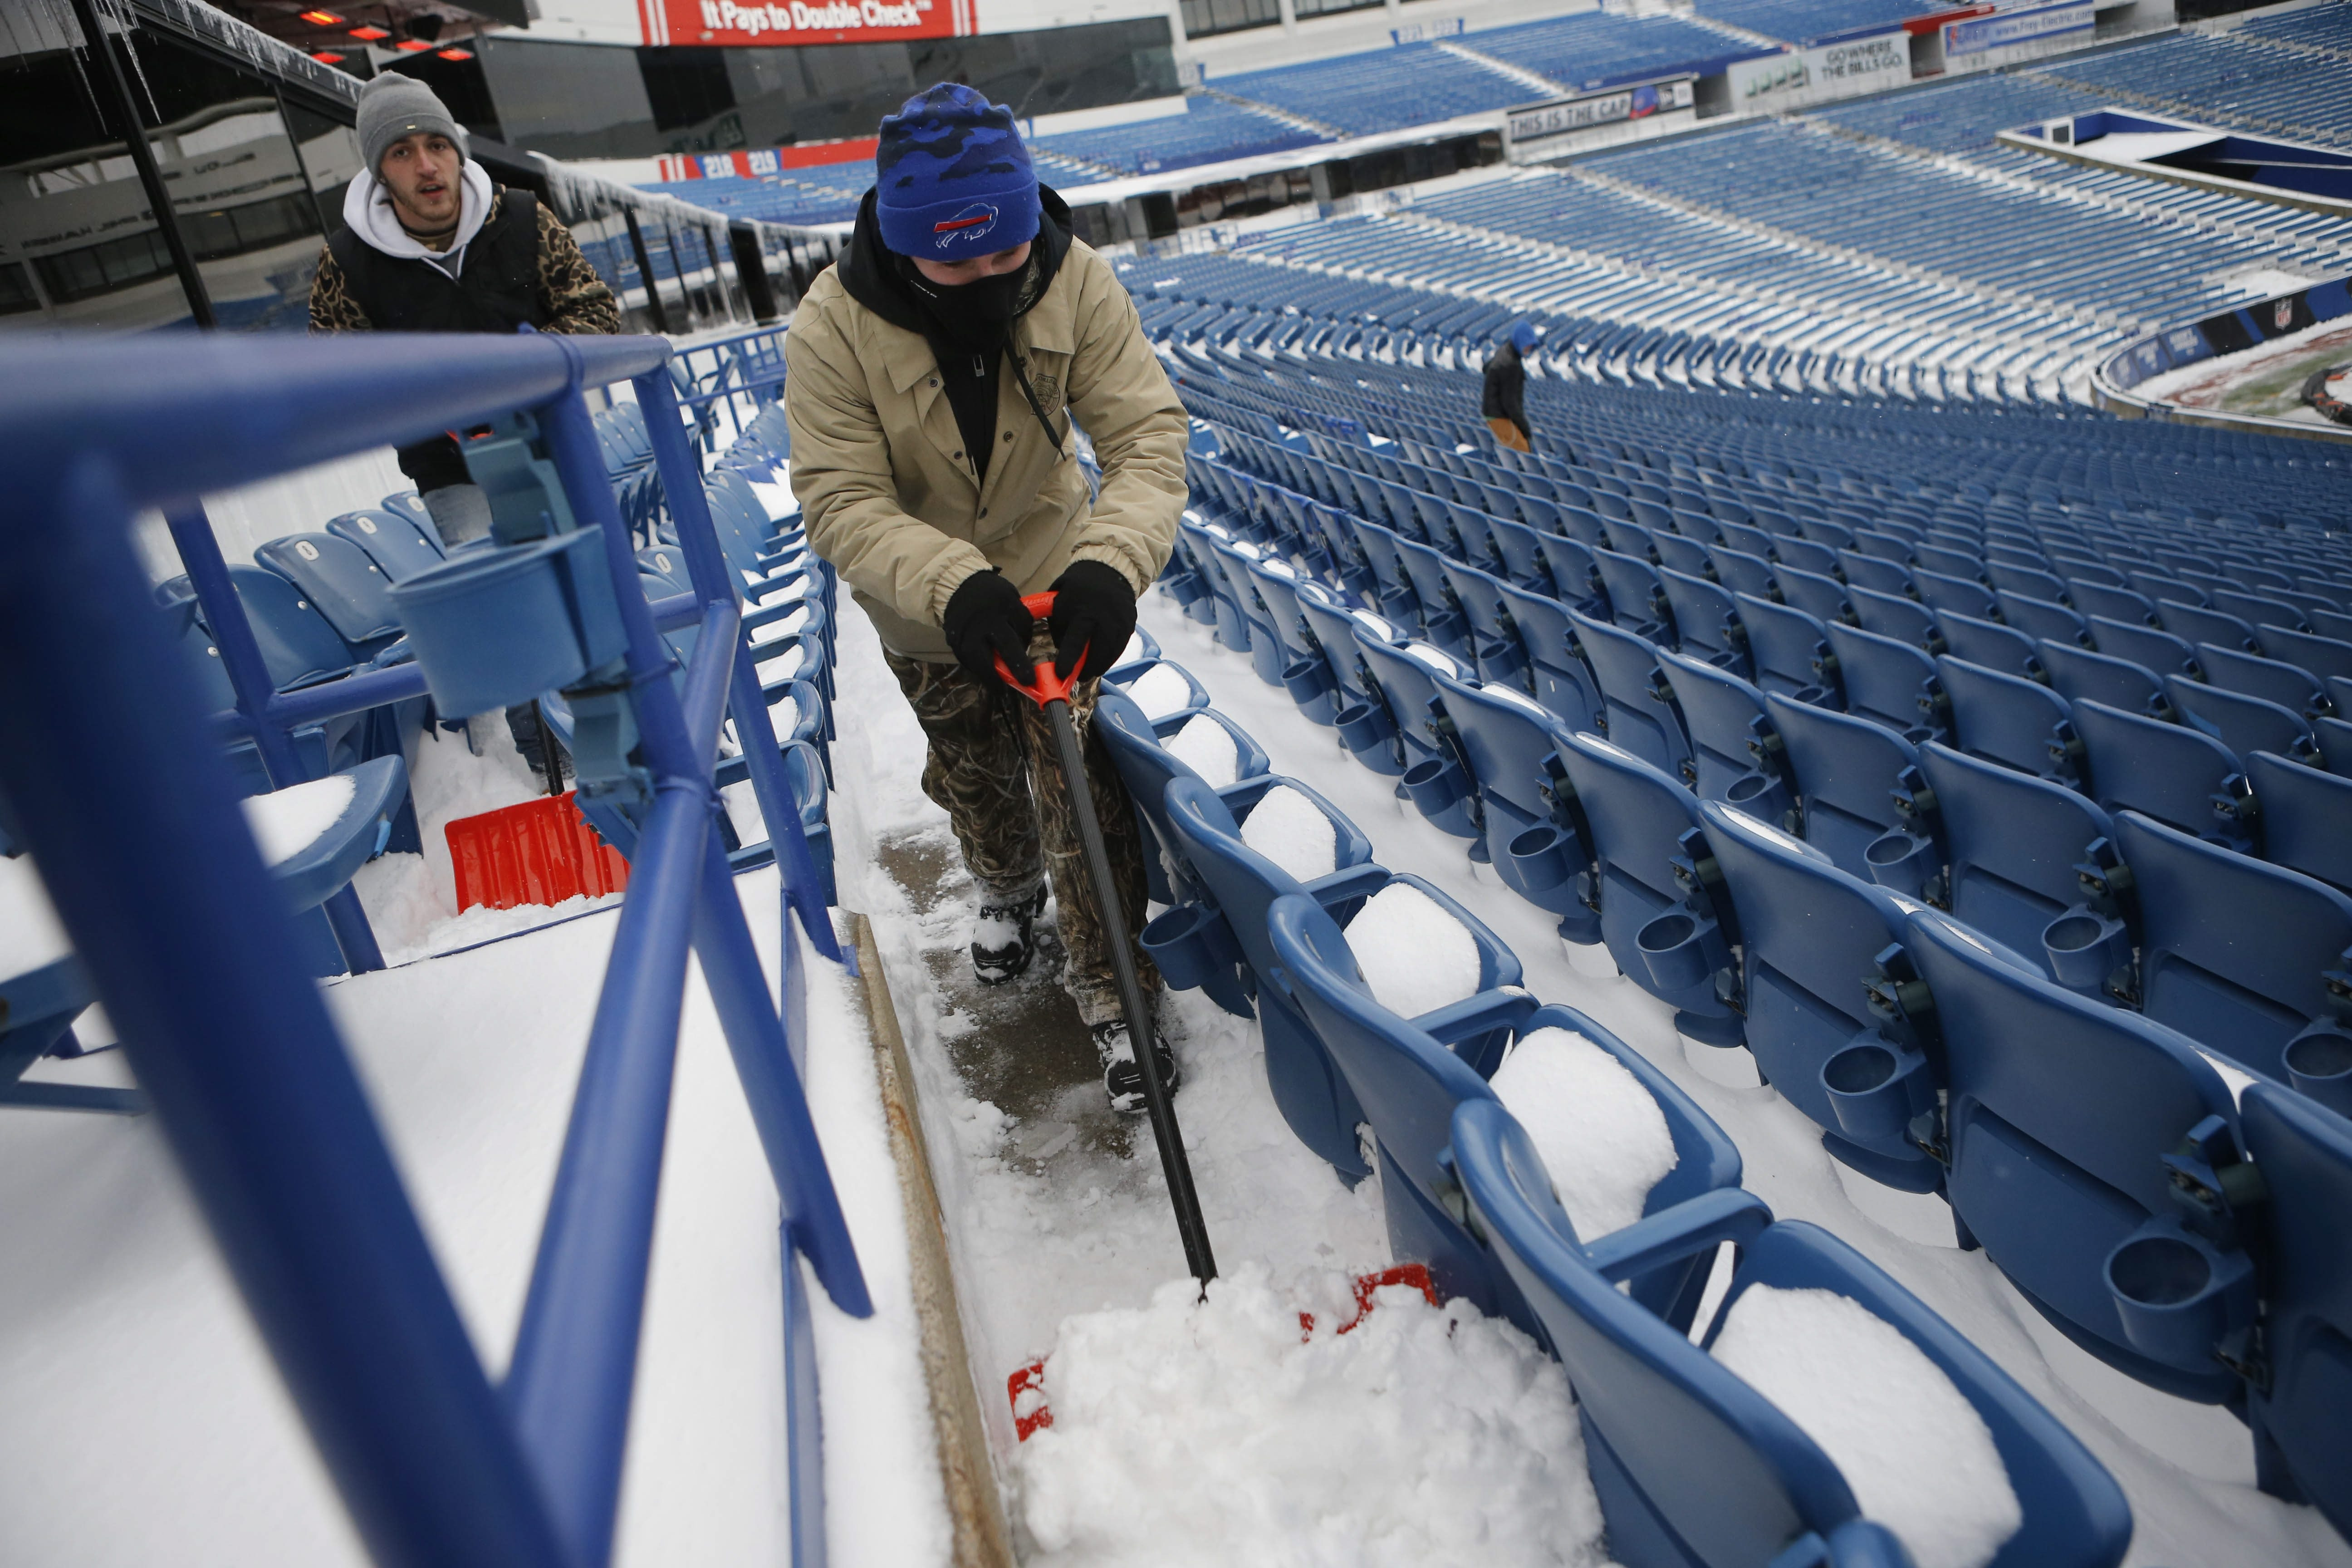 A shovel brigade clears snow from the stands at Ralph Wilson Stadium ahead of tomorrow's season closer against the Jets, Saturday, Jan. 2, 2016.  (Derek Gee/Buffalo News)